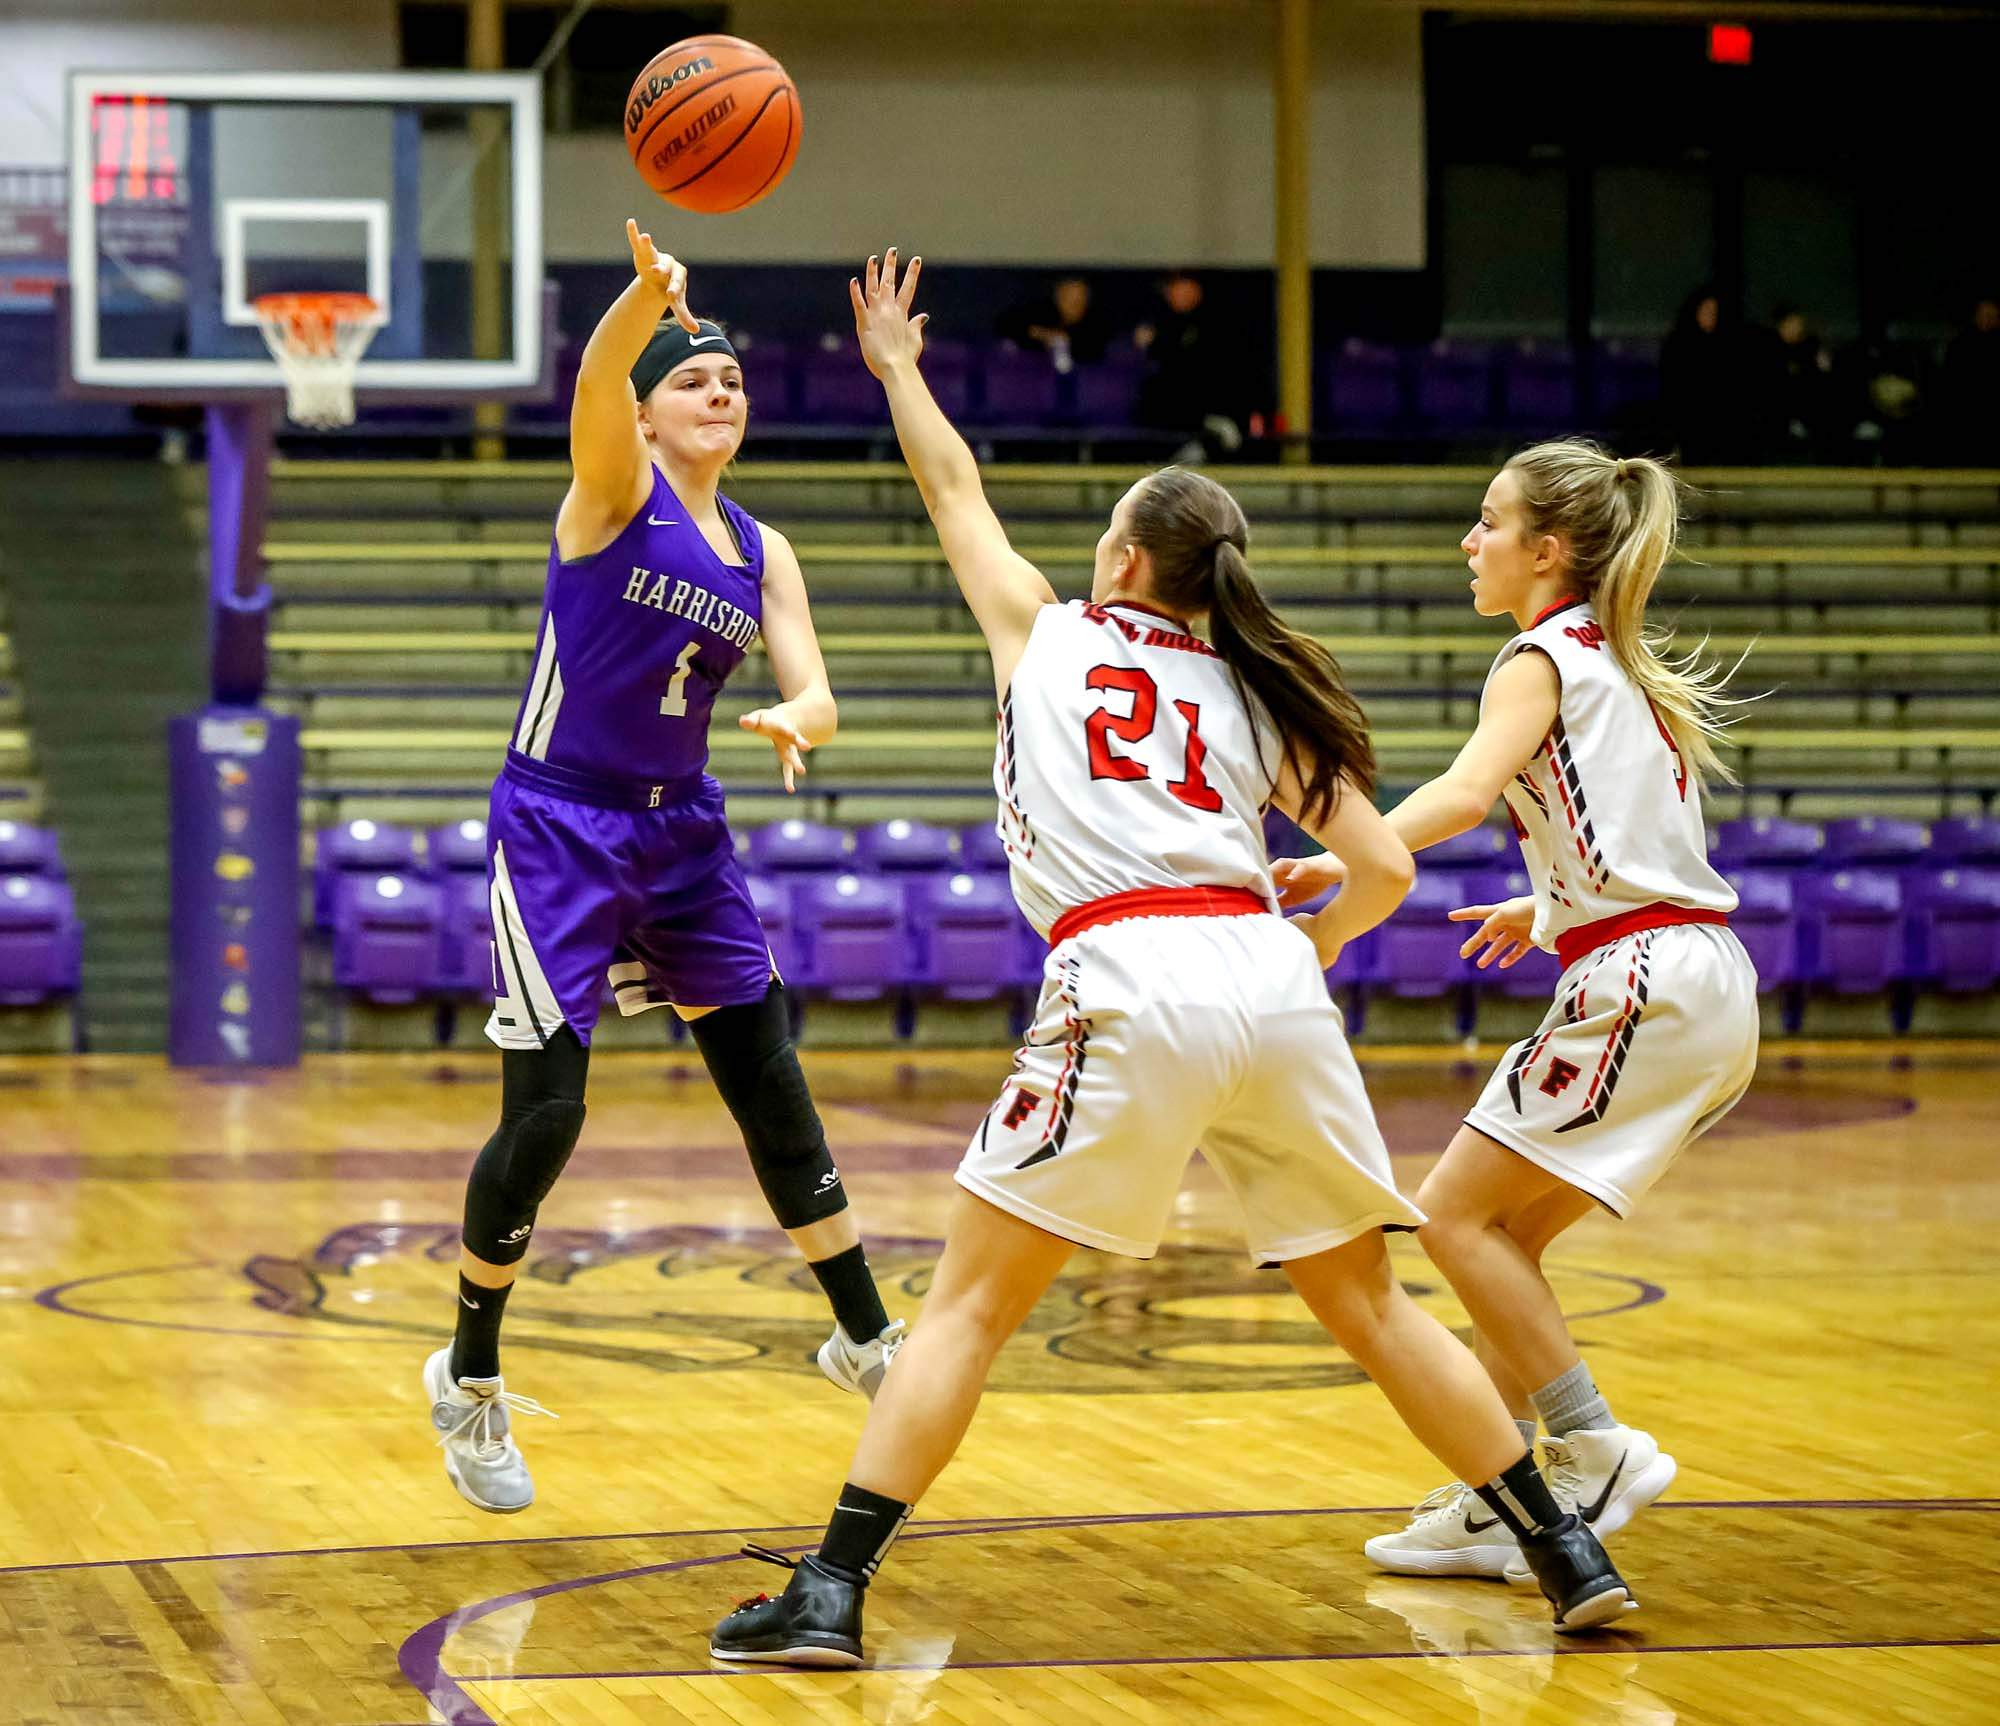 Harrisburg's Brooke Meylor looks for an open player against Fairfield Saturday at the Lady Eagle Mid-Winter Classic.